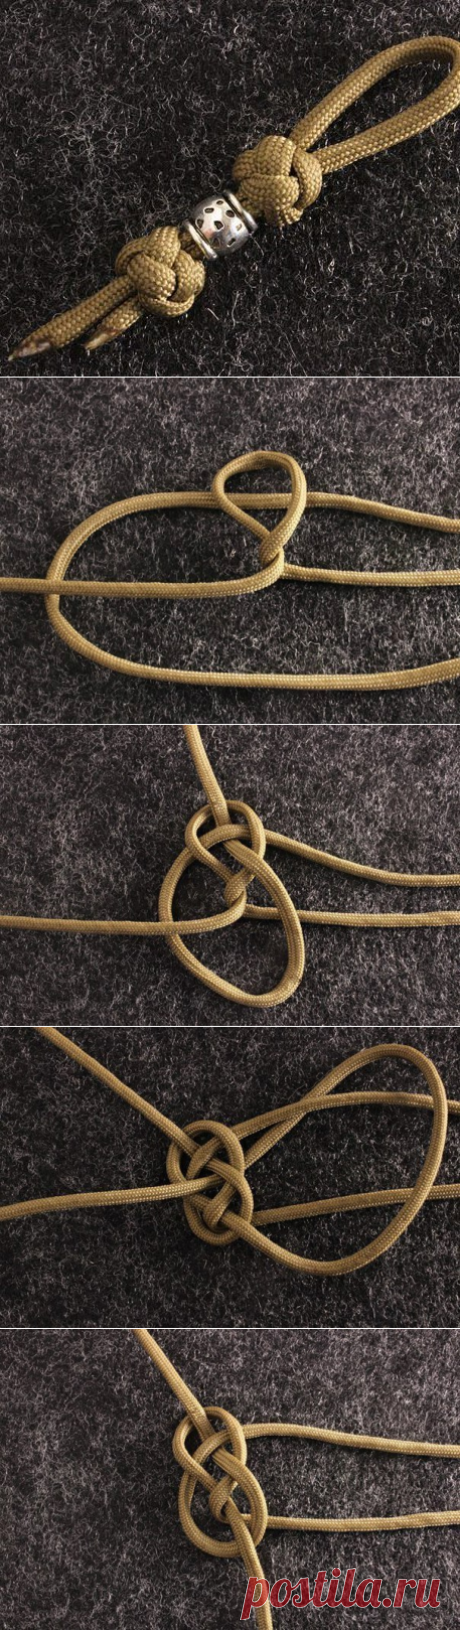 The instruction in pictures on setting of diamond knot